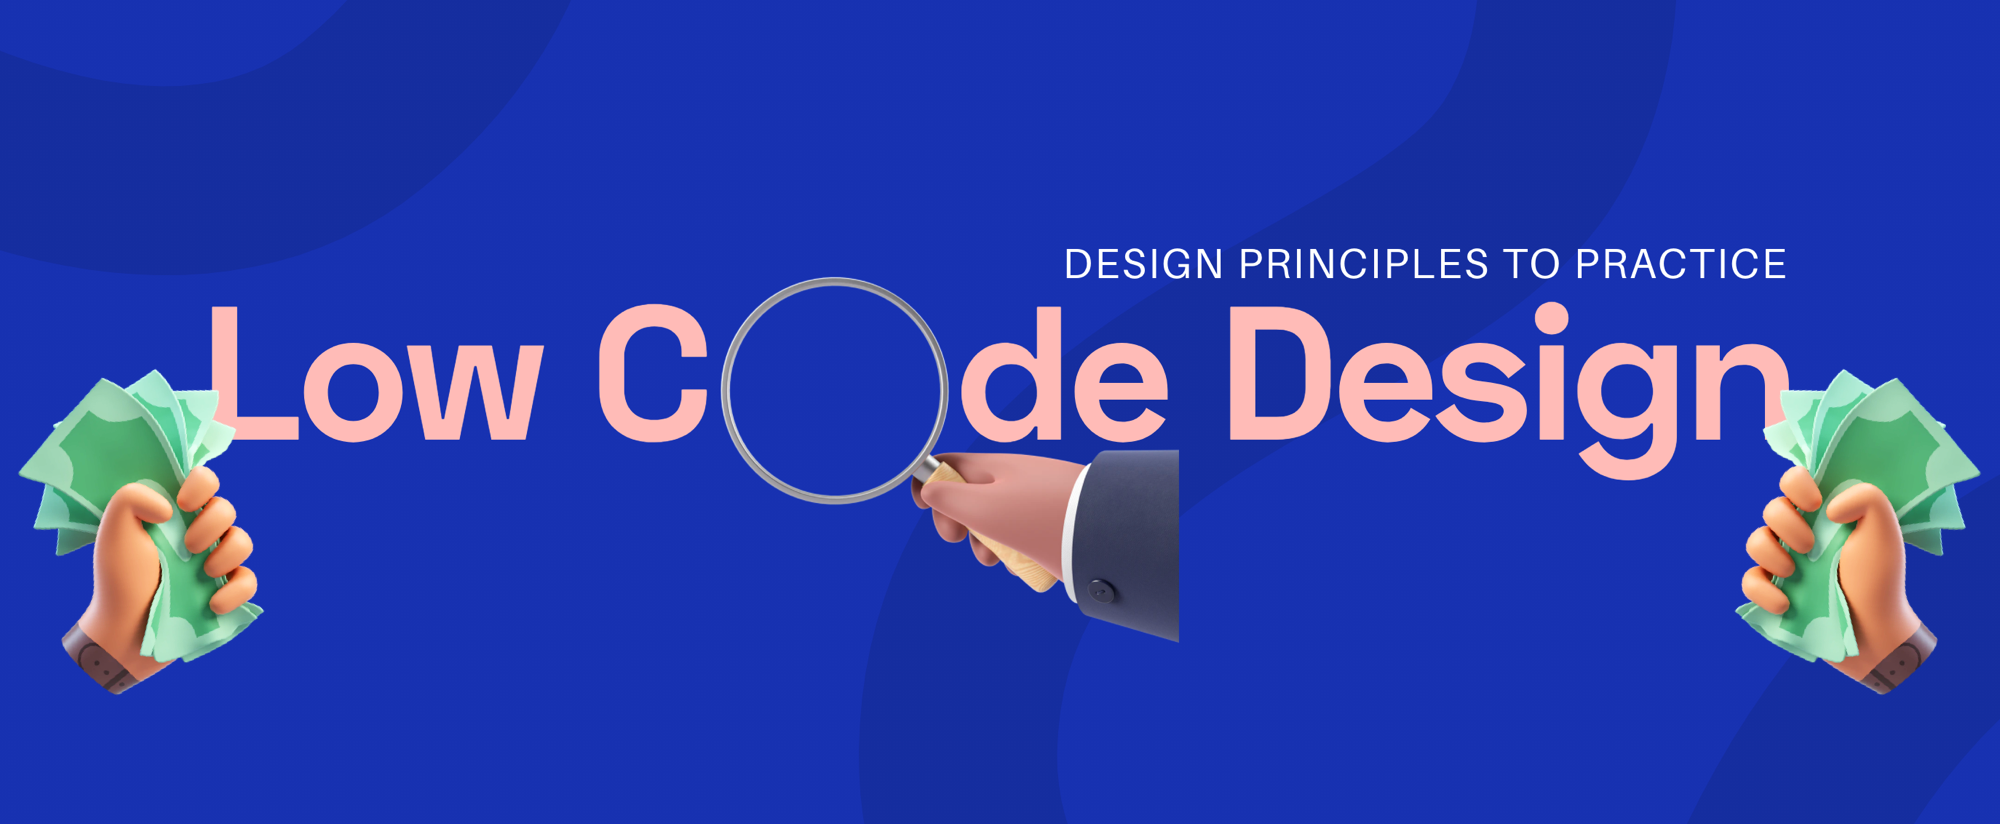 Banner image having Low Code Design as text and two hands throwing money at it from the sides.